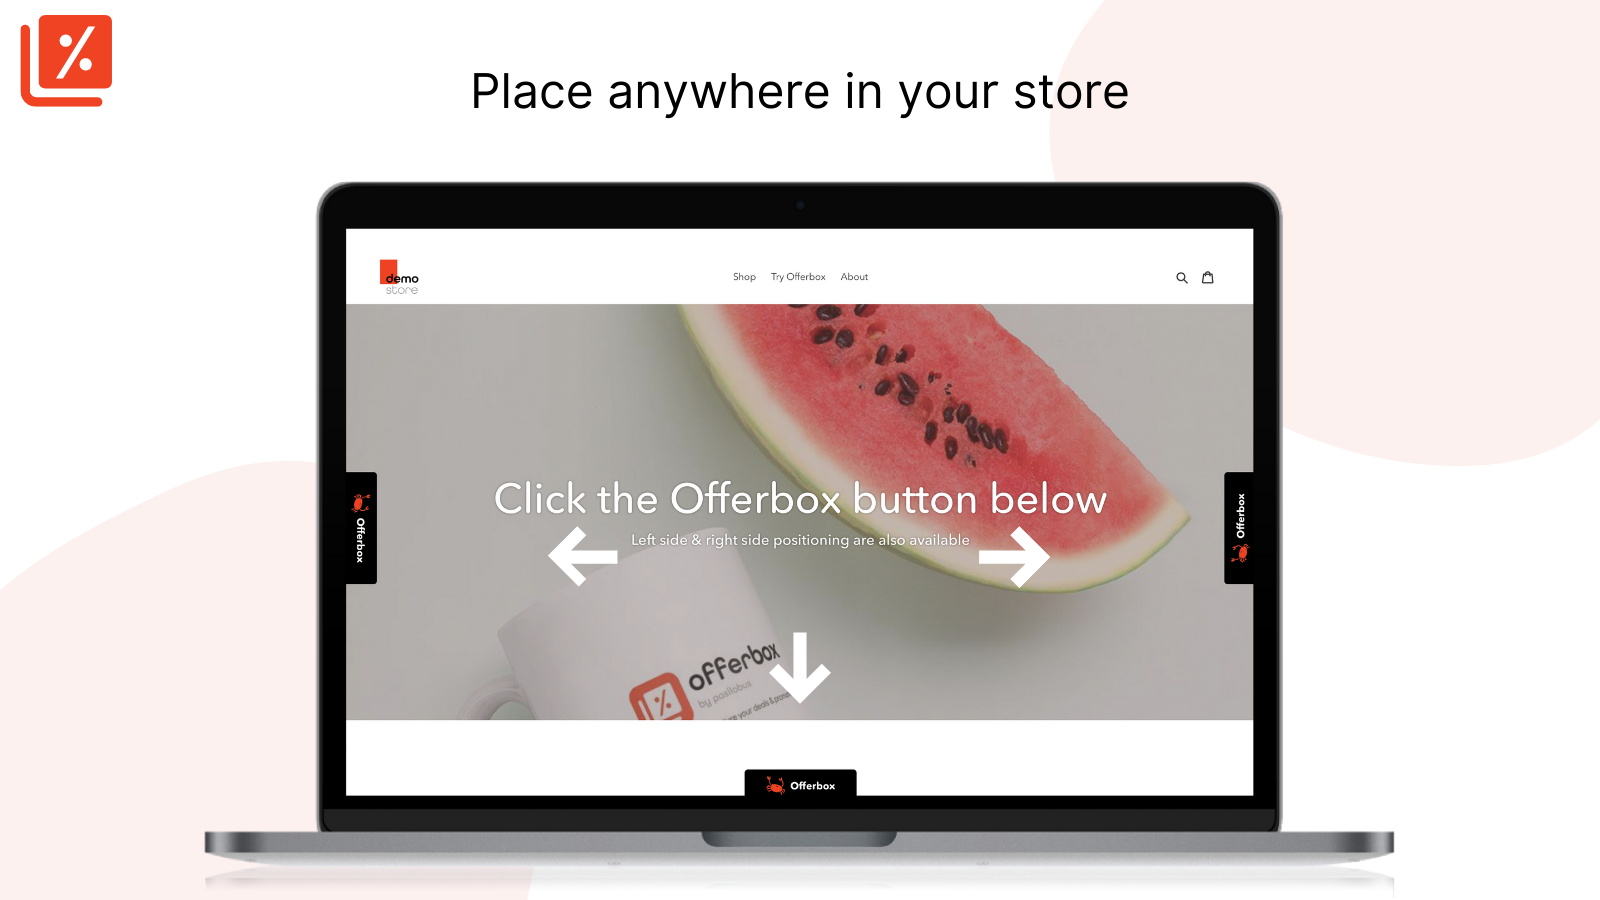 Place anywhere in your store - Offerbox